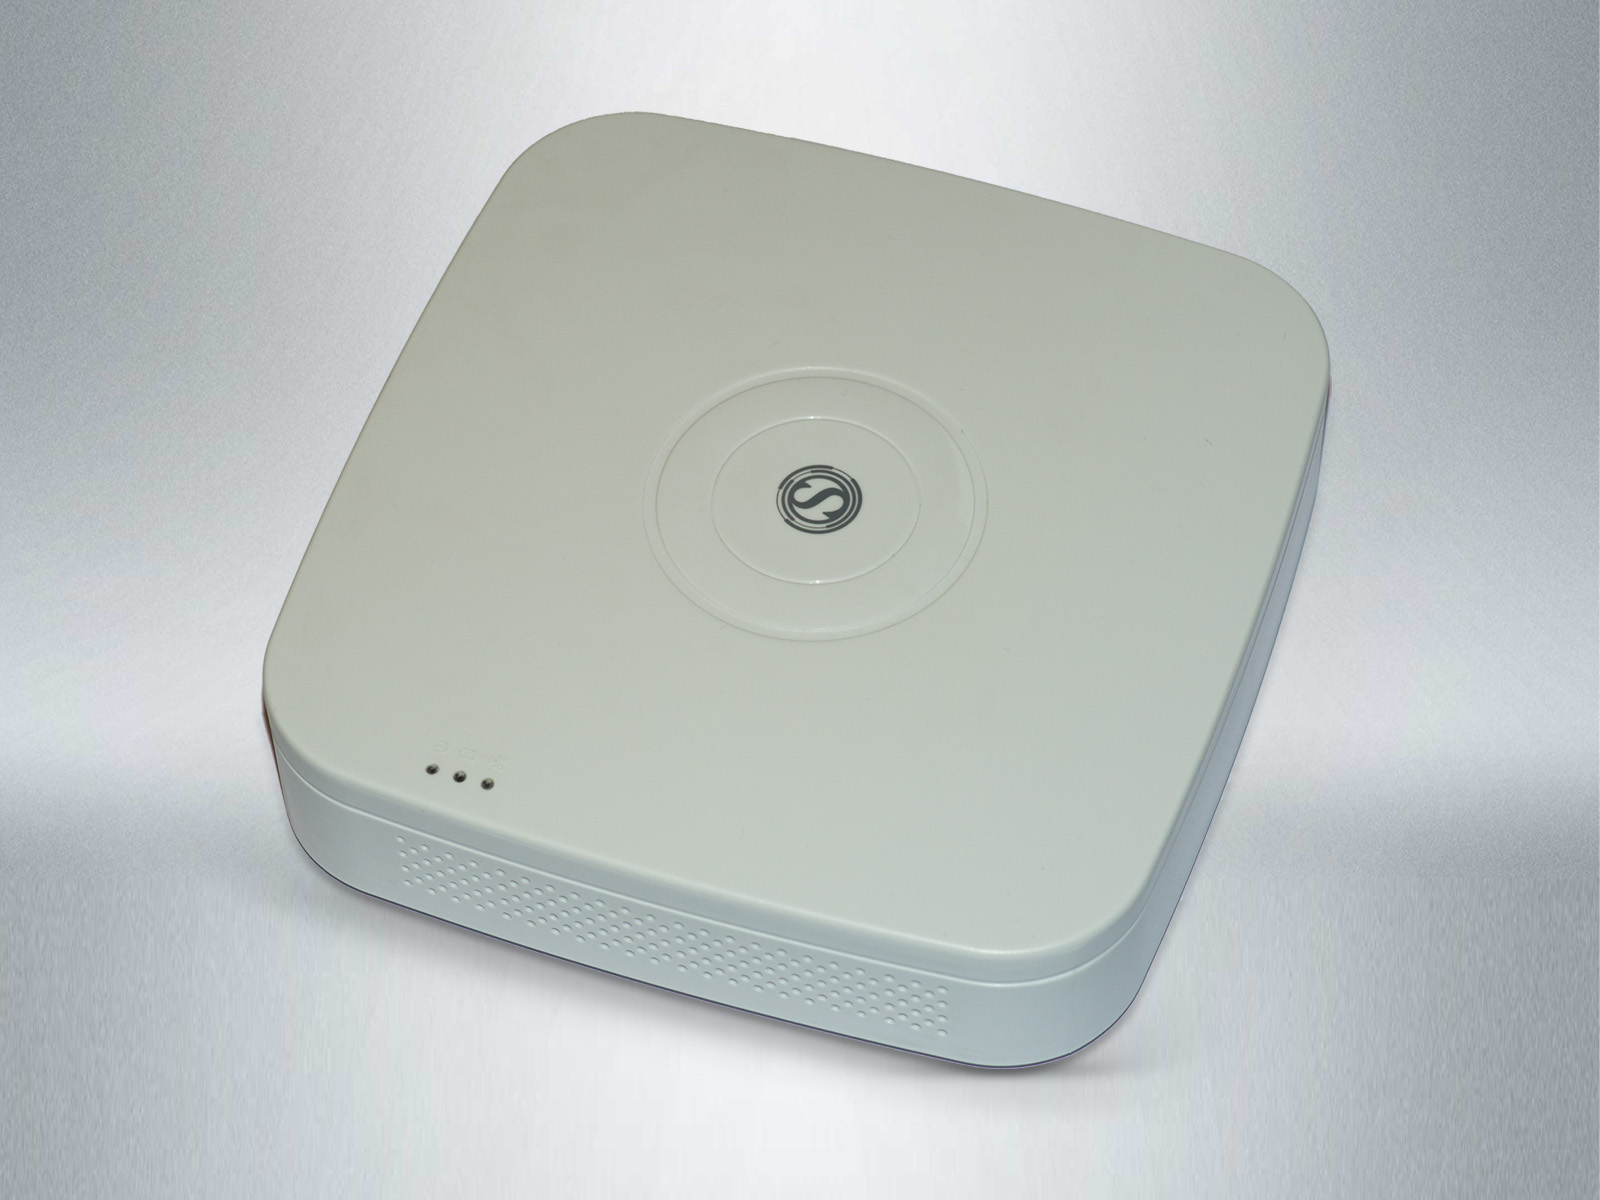 kontaktannonse gratis video dating